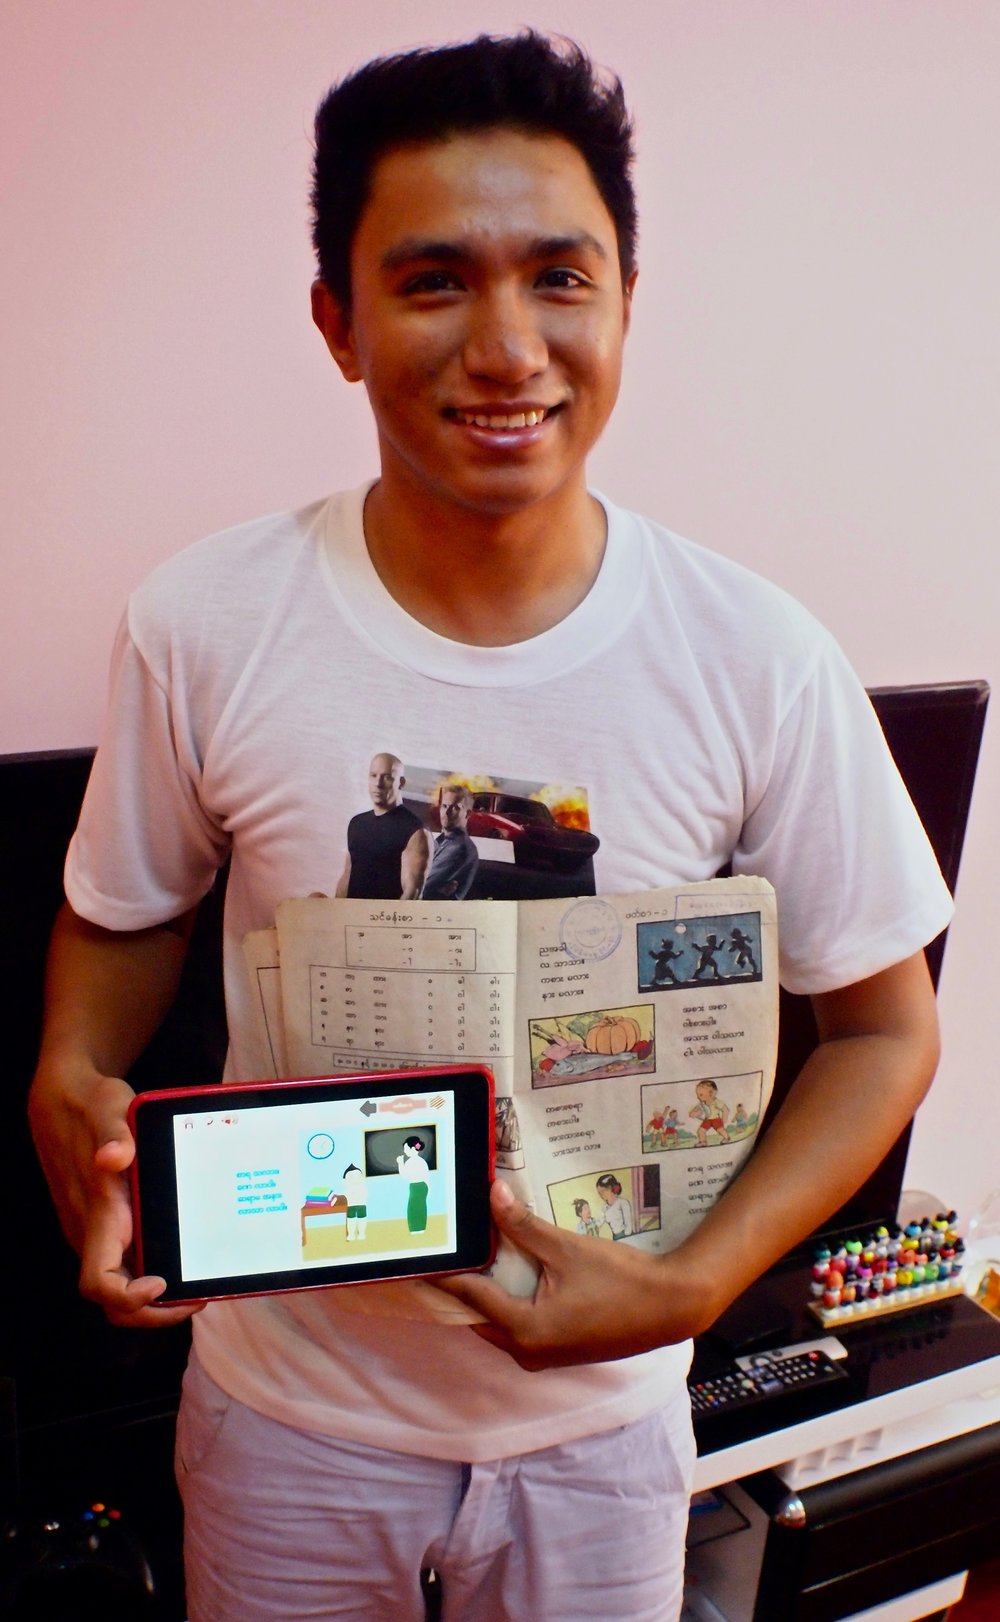 Thet Naing Swe builds educational apps based on traditional school books for working Birmese children. (C) Remko Tanis